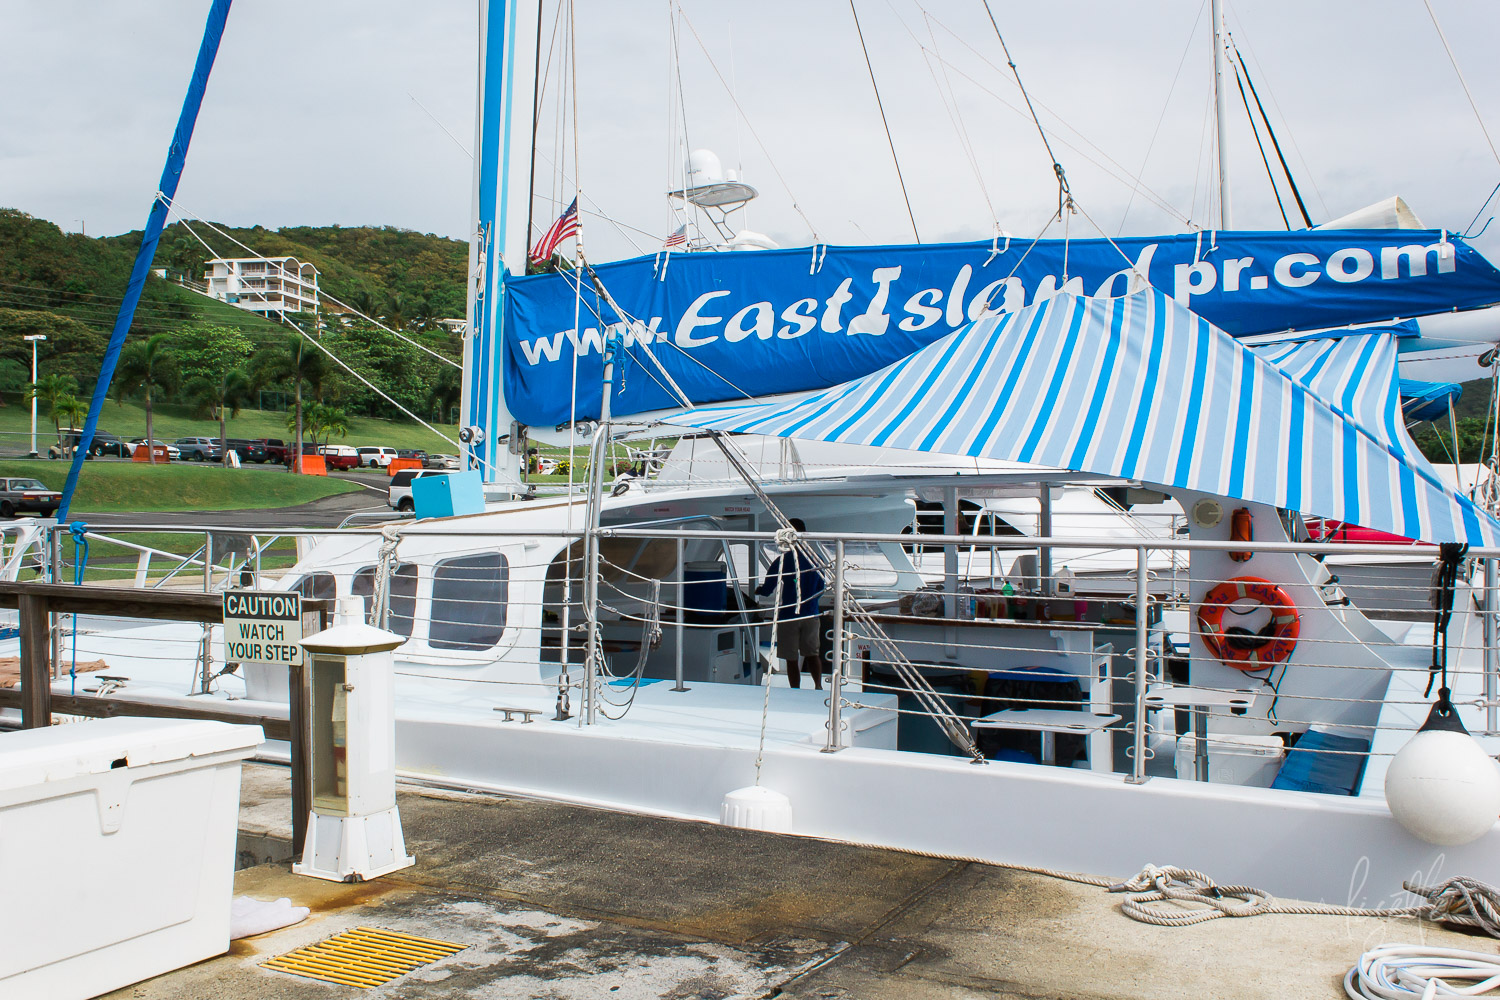 Catamaran-Excursion-East-Island-Tours-PR